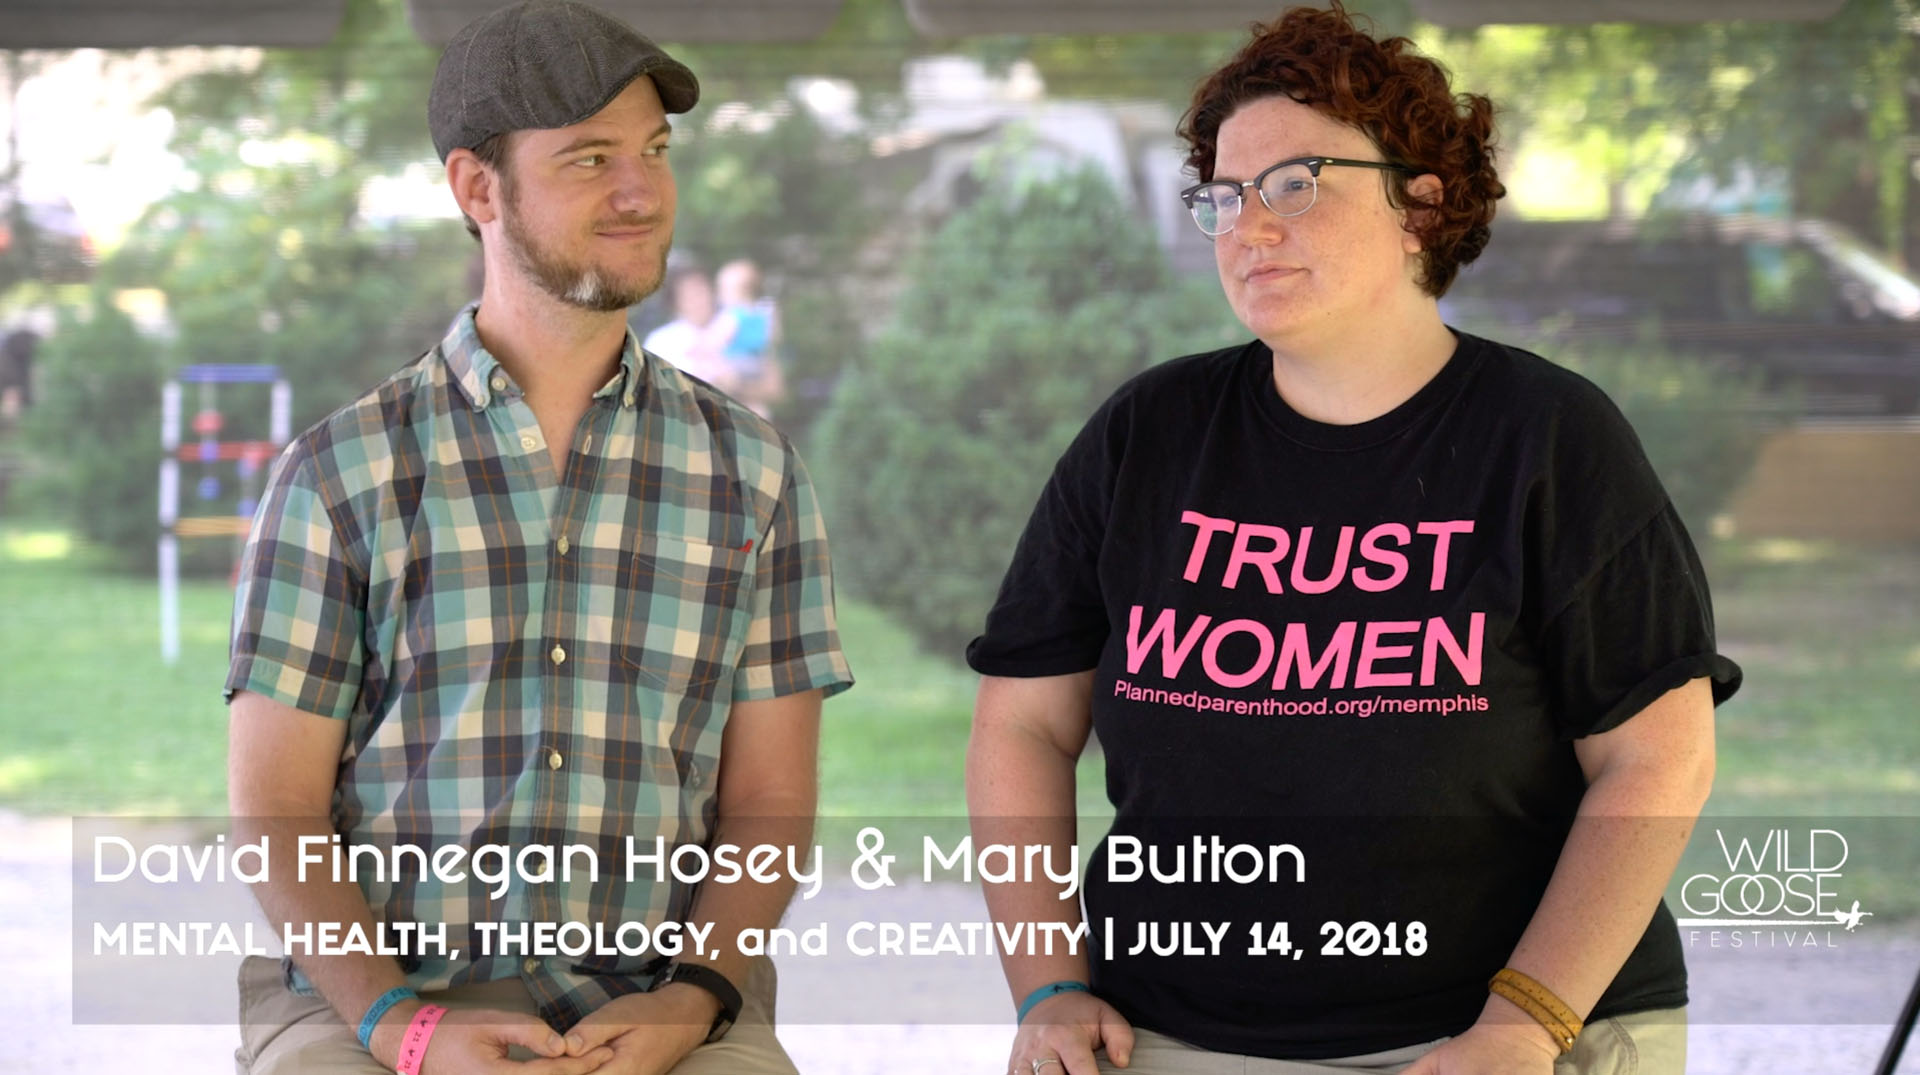 Mental Health, Theology, and Creativity - David Finnegan Hosey & Mary Button